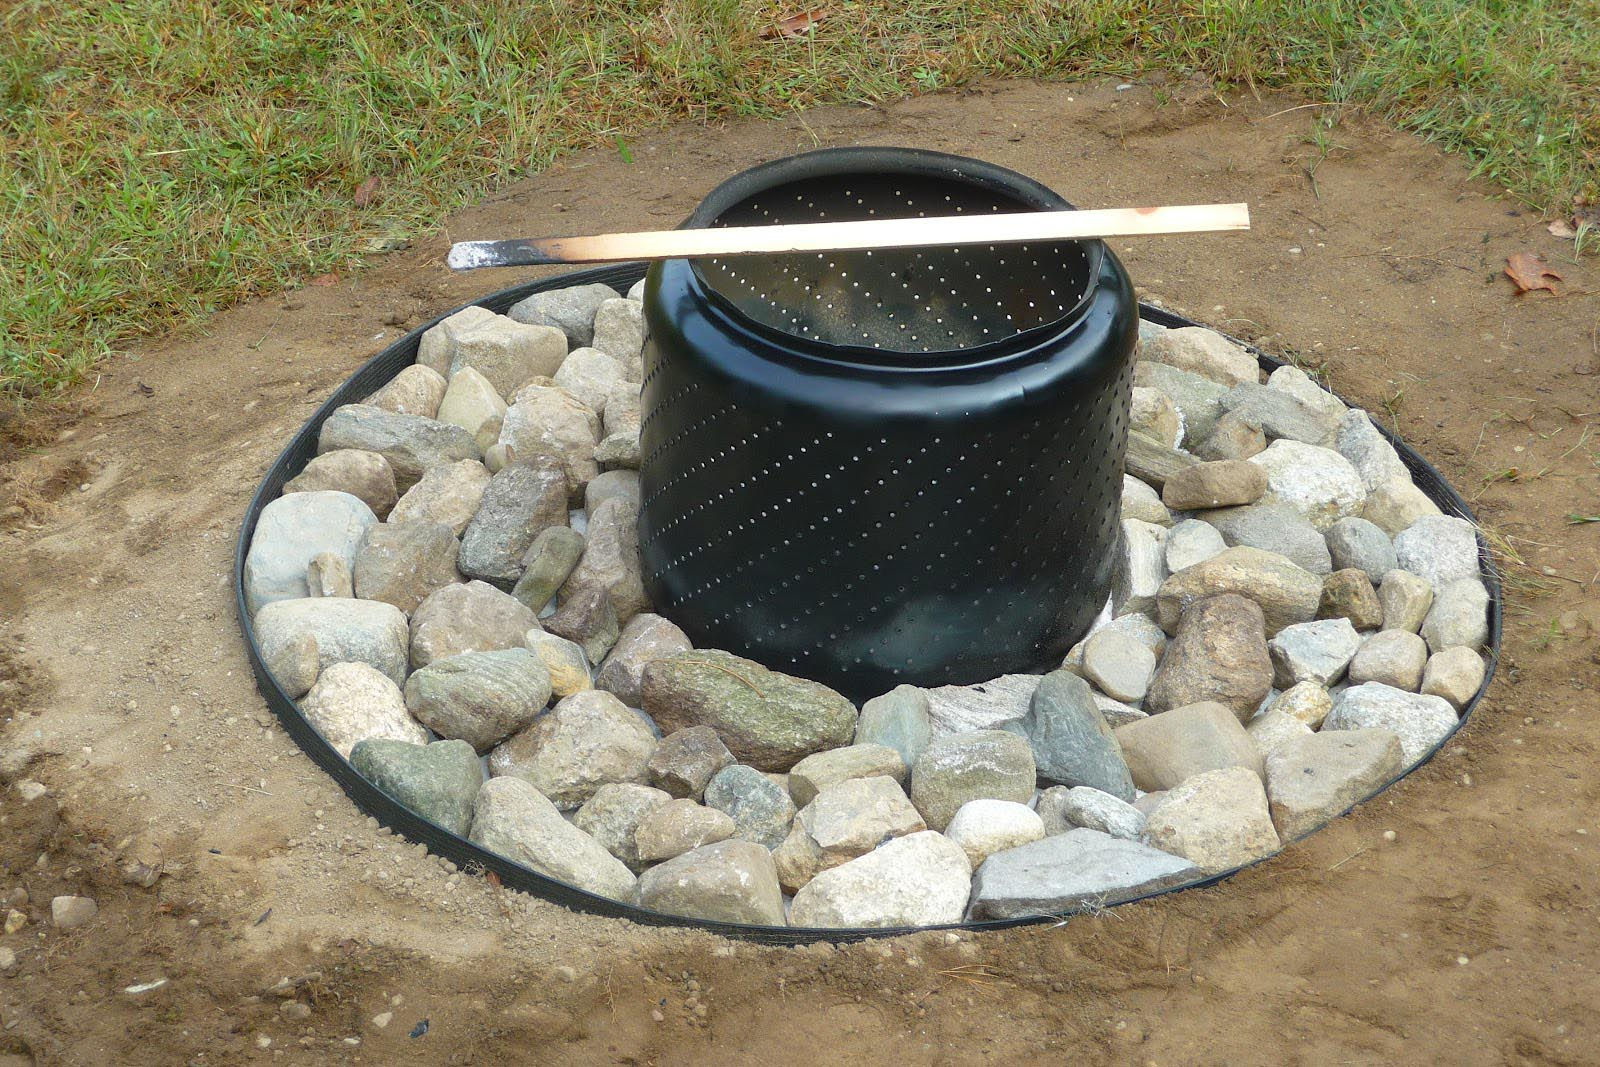 washing machine barrel fire pit fire pit design ideas